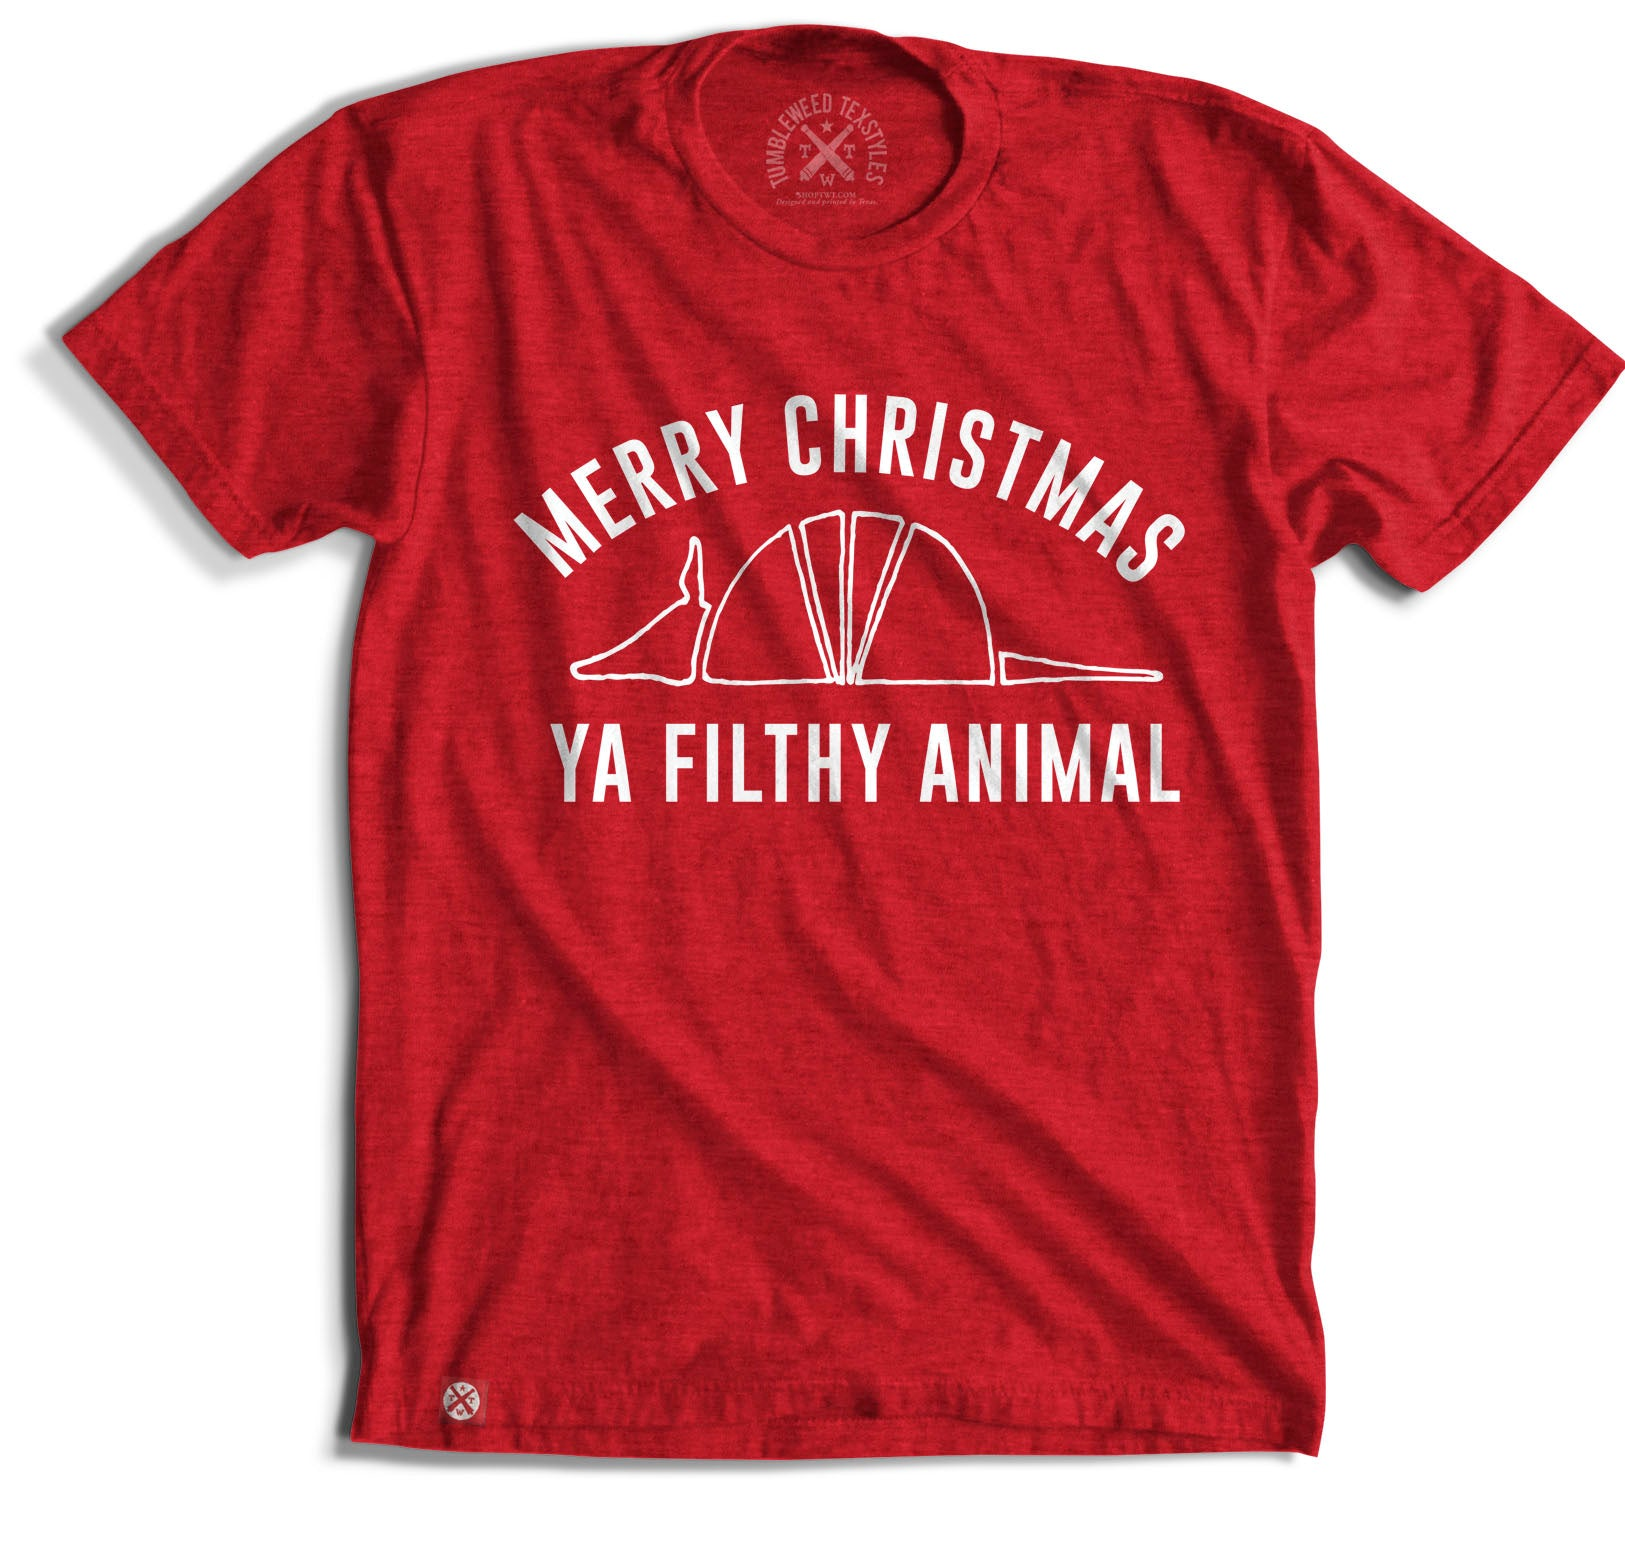 Merry Christmas You Filthy Animal T-shirt